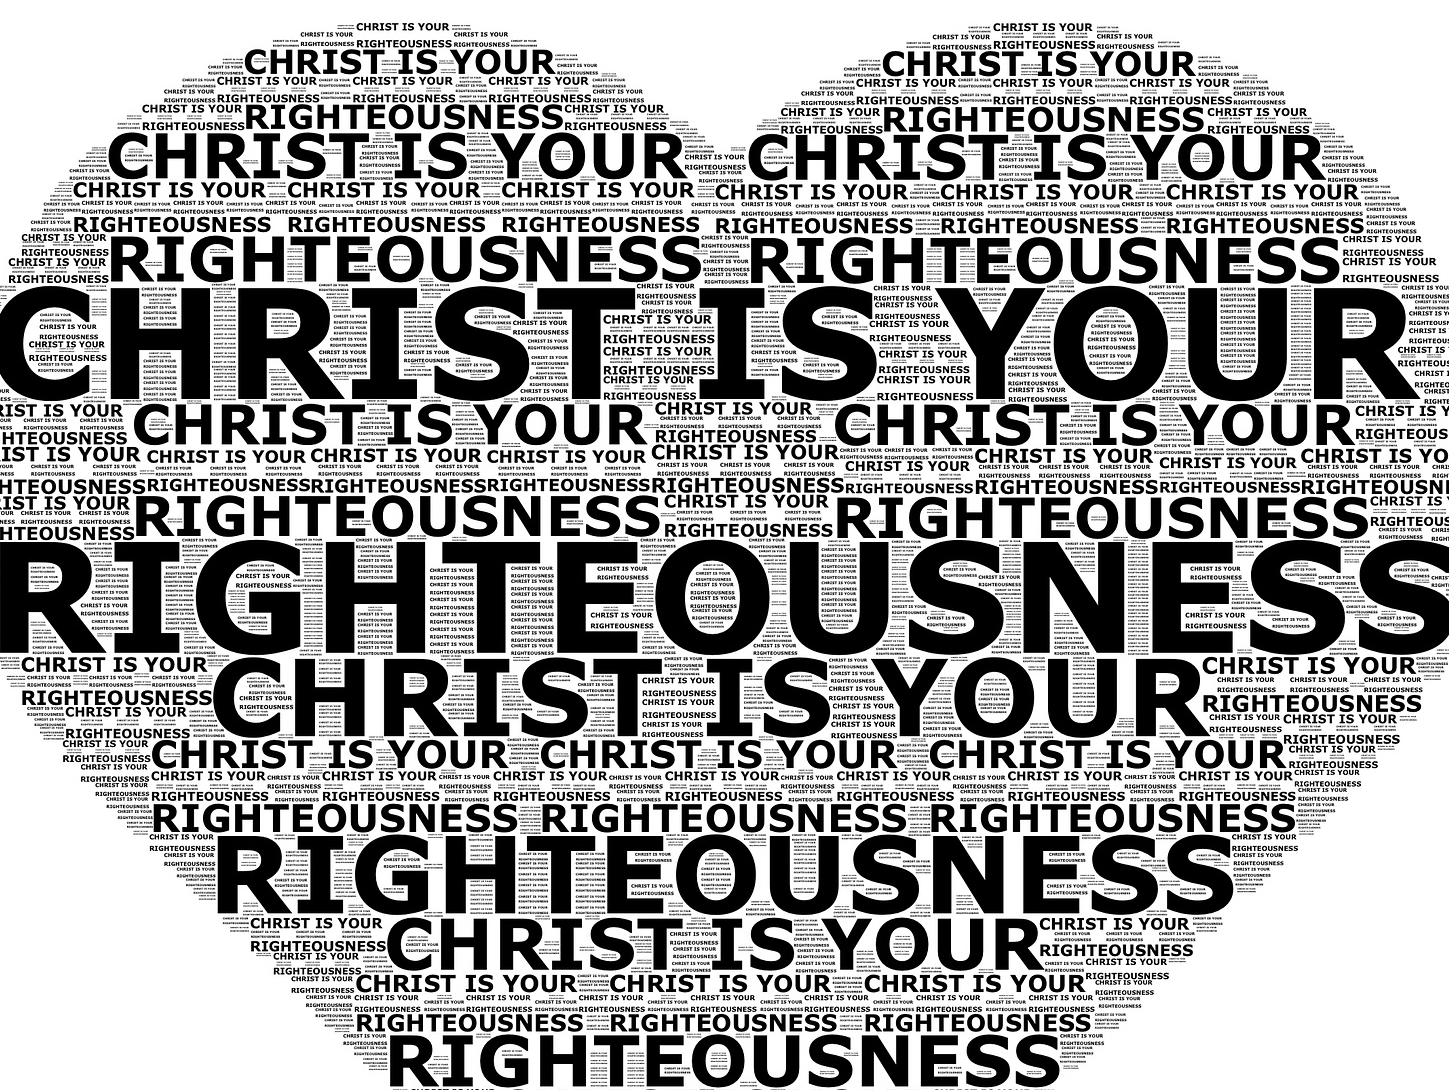 Christ is your righteousness